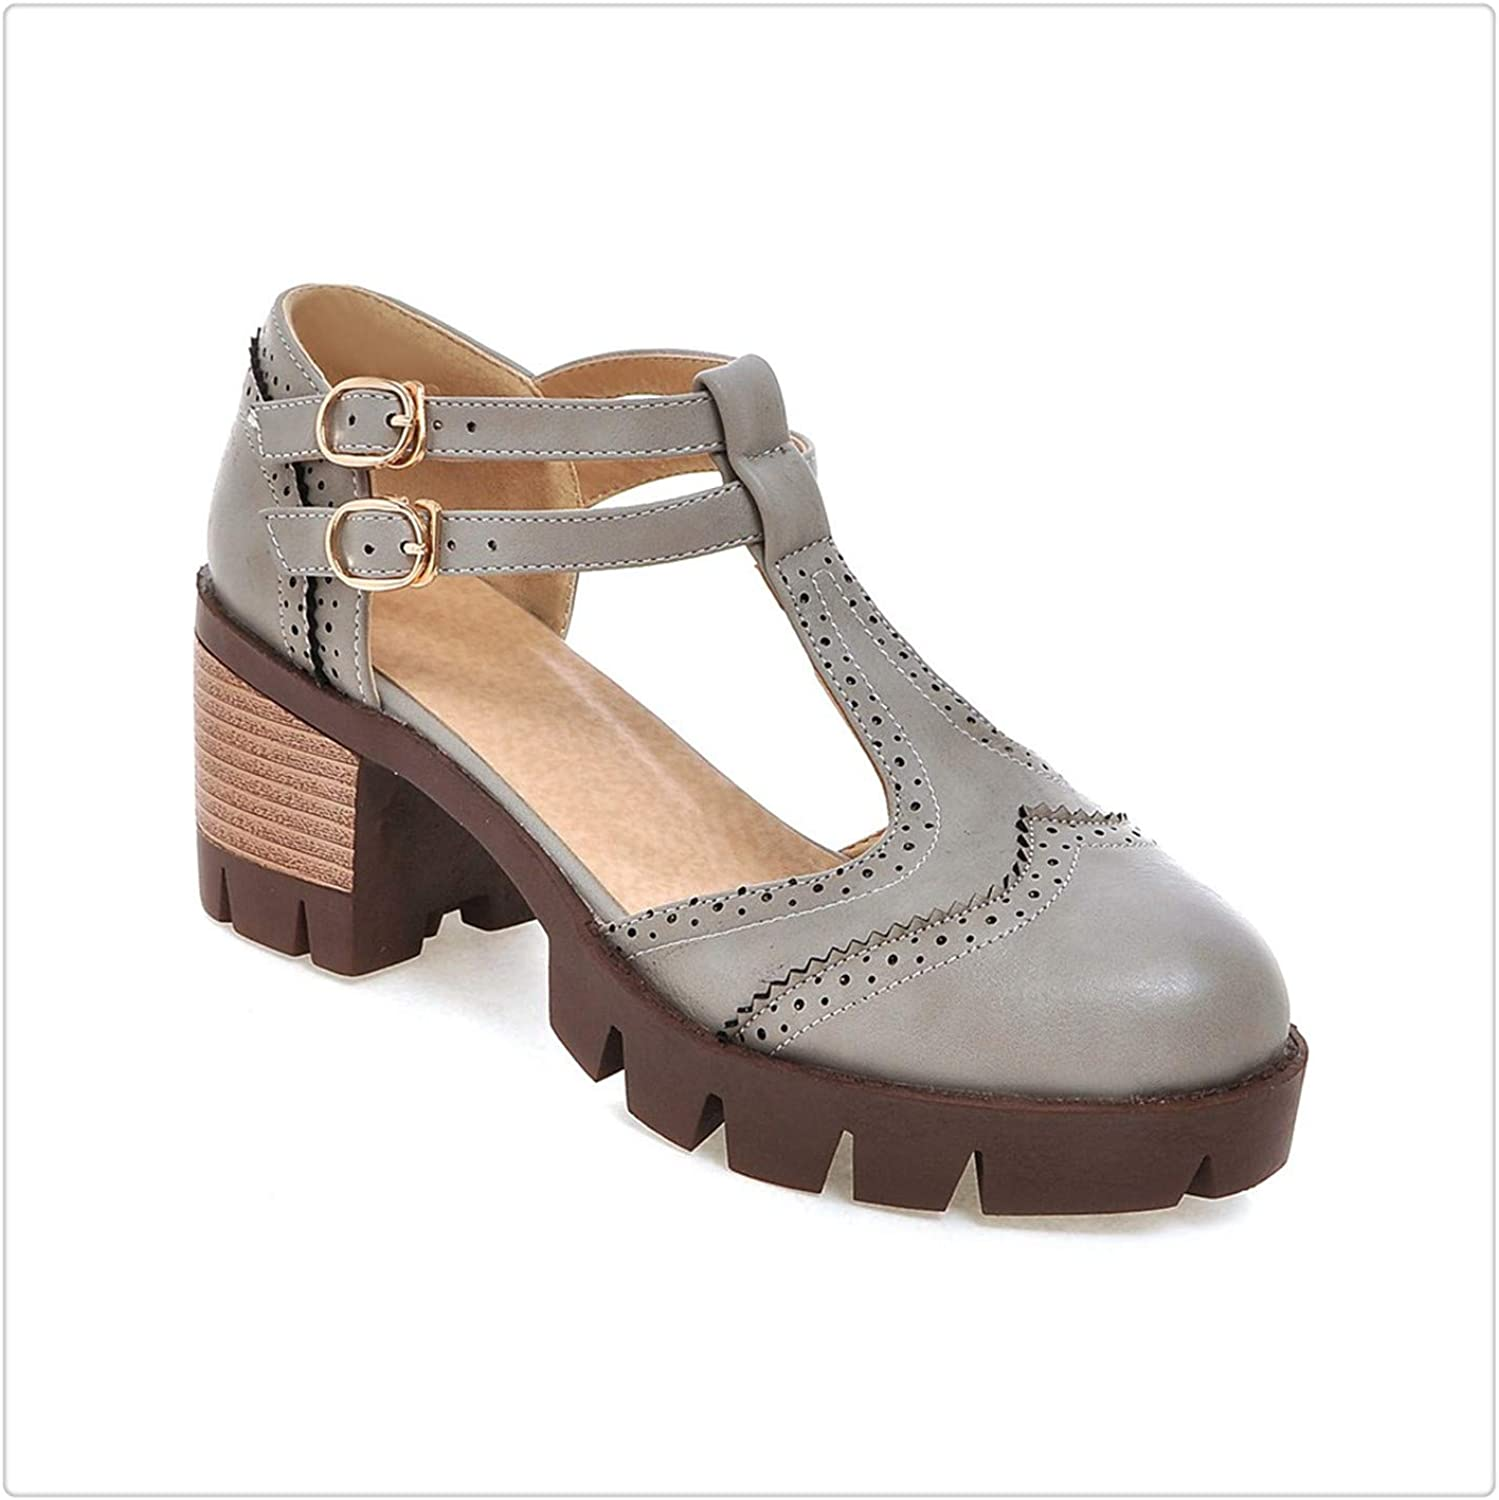 Yyixianma Spring Autumn Buckle Office Lady high Heel Retro Style Round Toe shoes Thick Heel